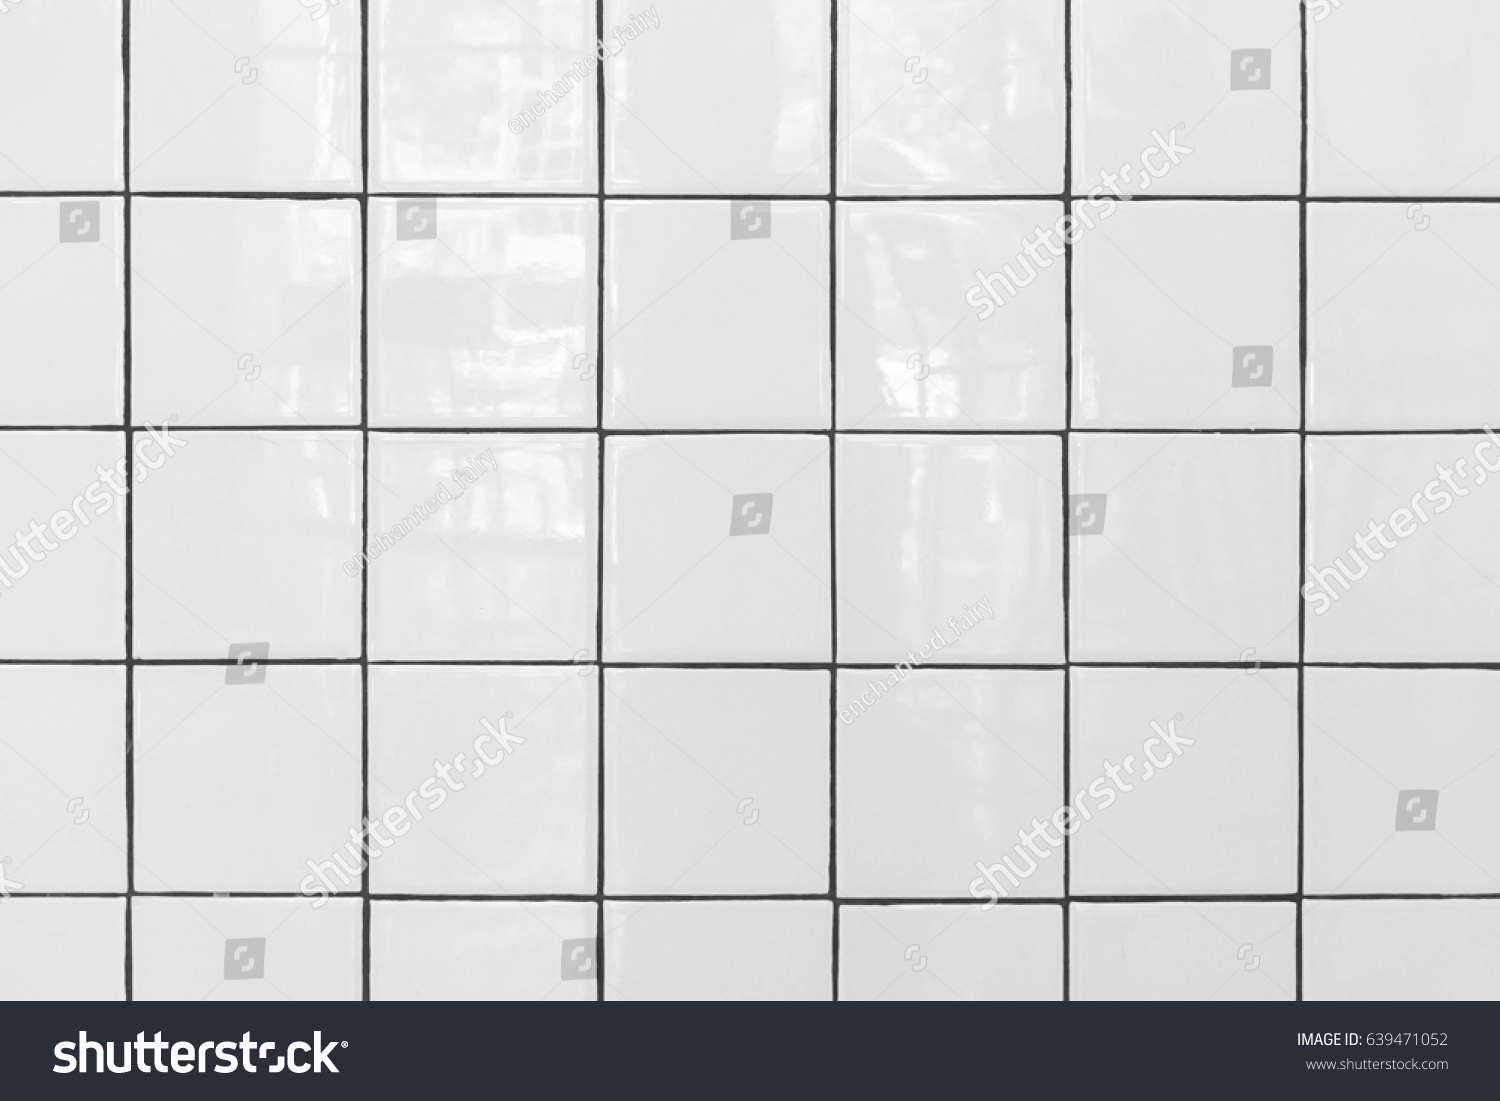 White Tile Floor Texture White Tiles Floor Texture Tile Pattern Stock Photo 639471052